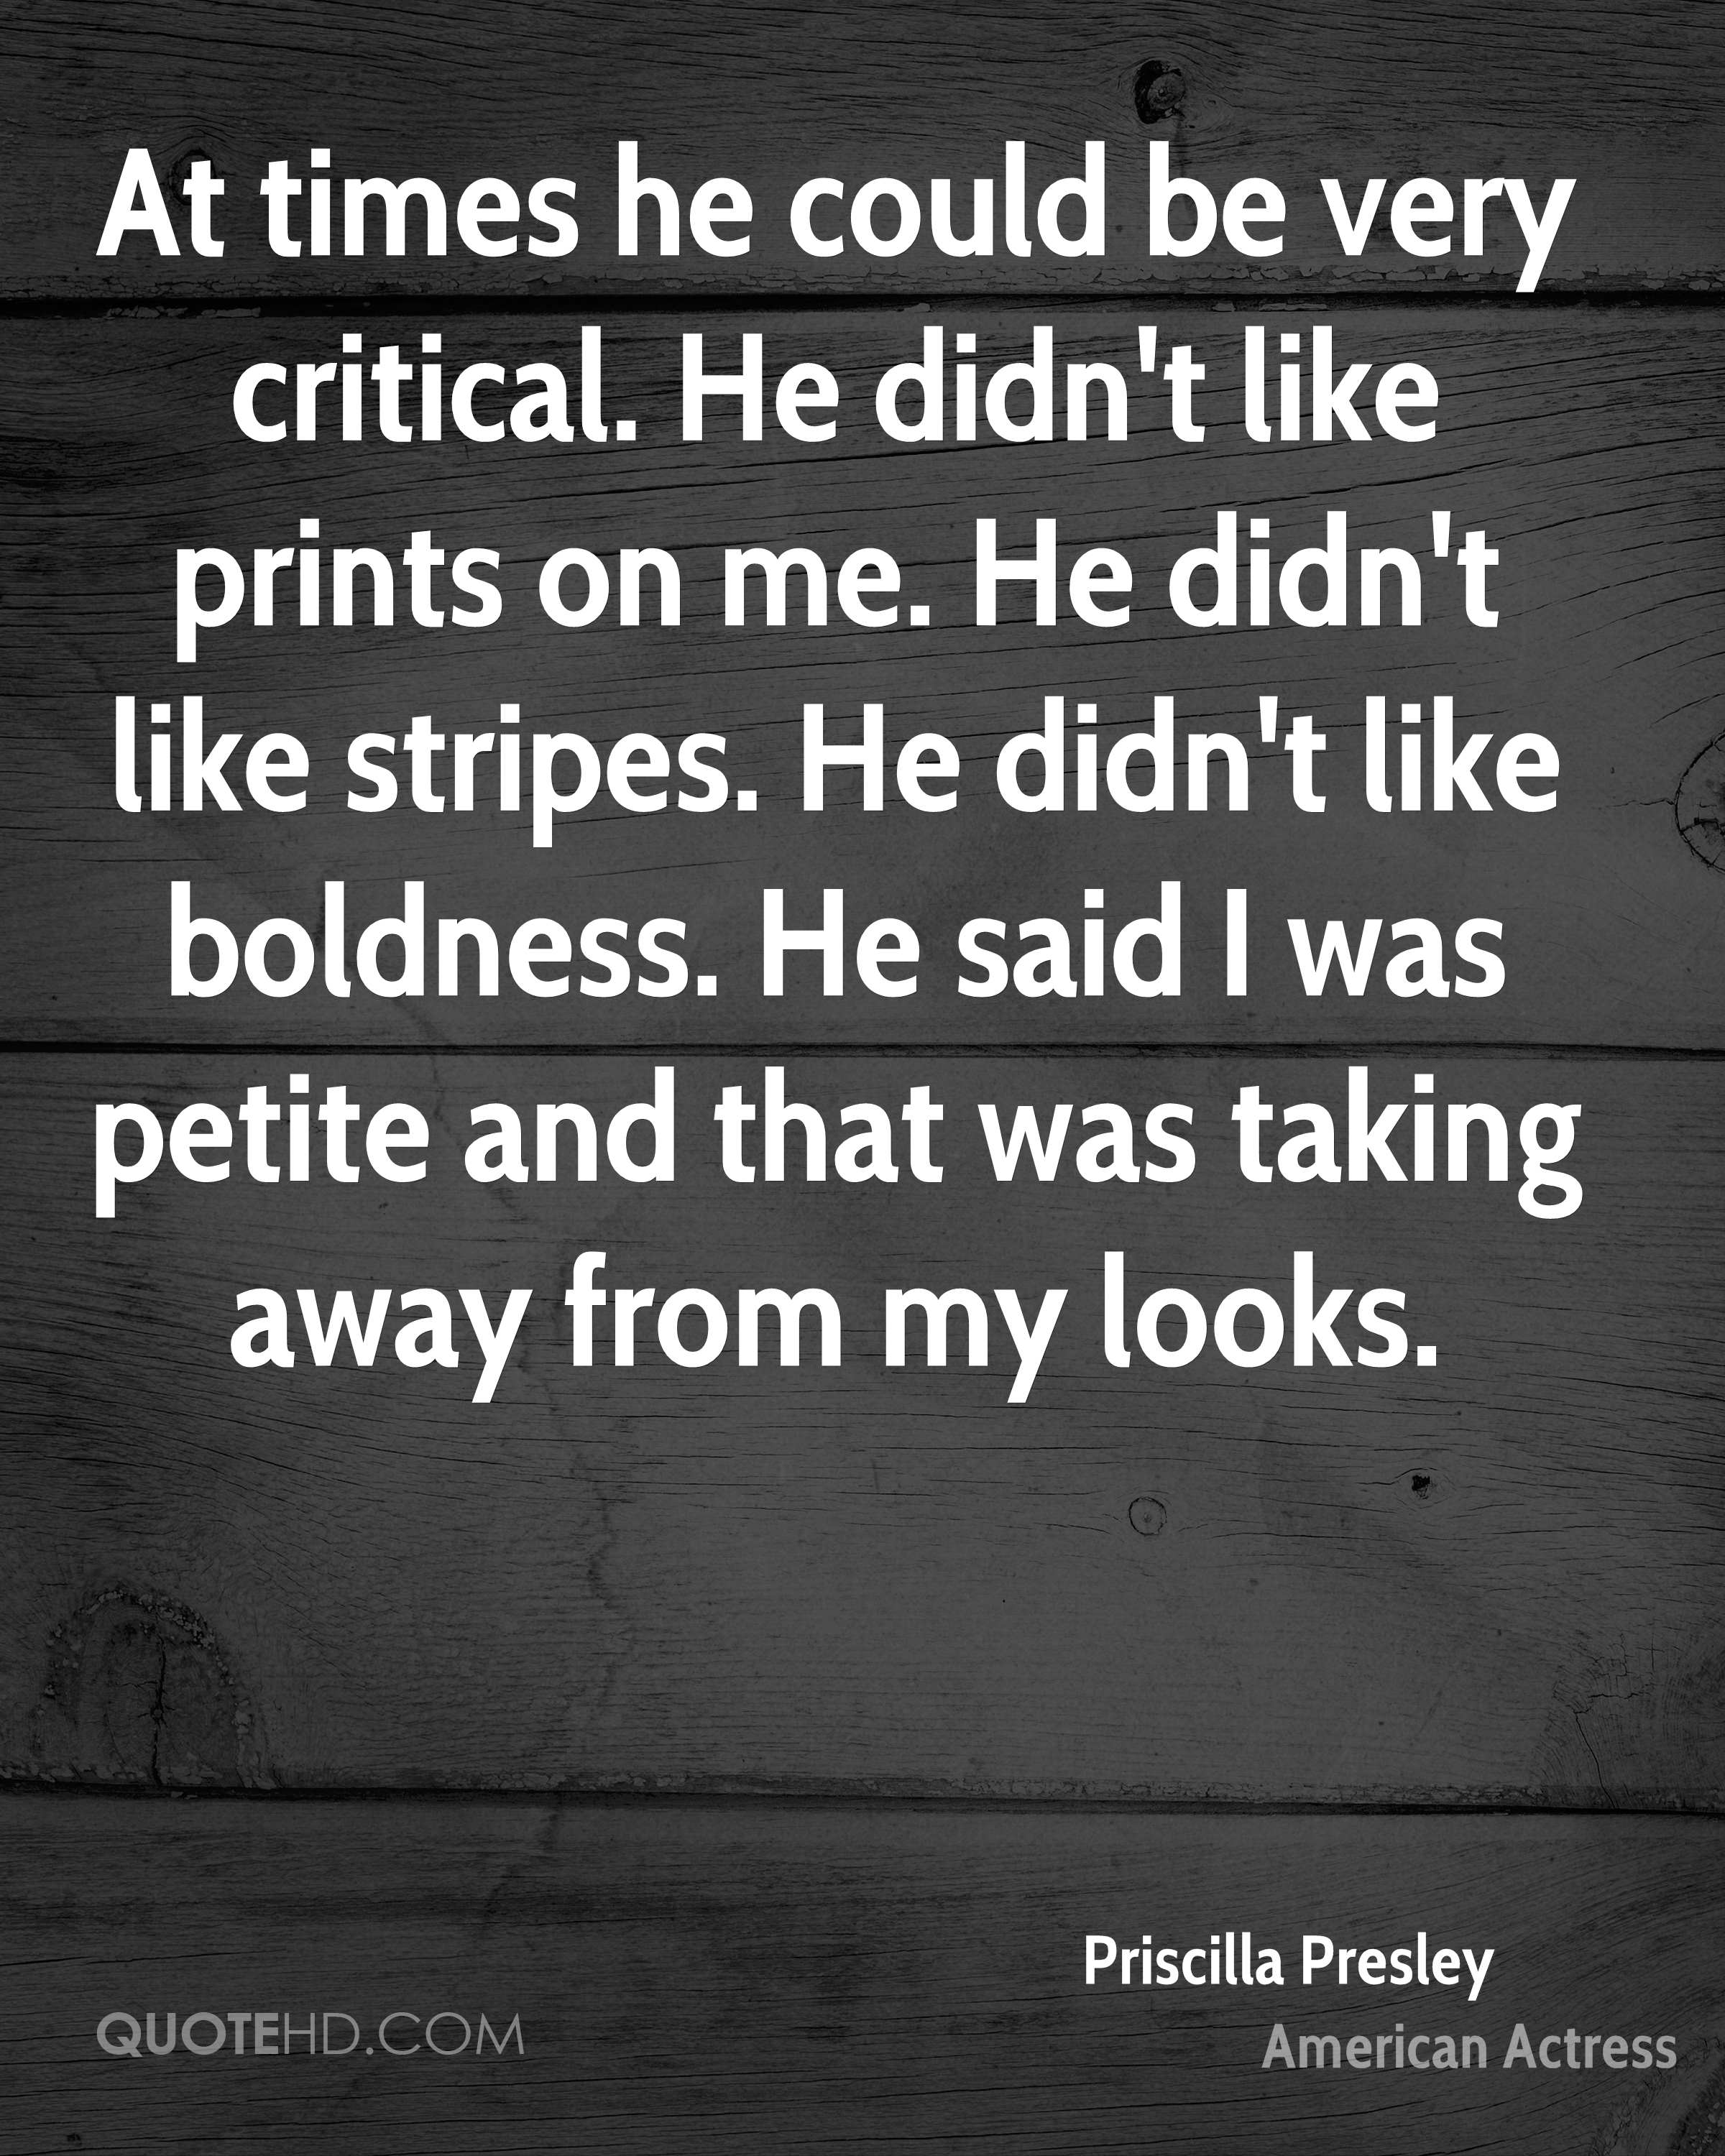 At times he could be very critical. He didn't like prints on me. He didn't like stripes. He didn't like boldness. He said I was petite and that was taking away from my looks.